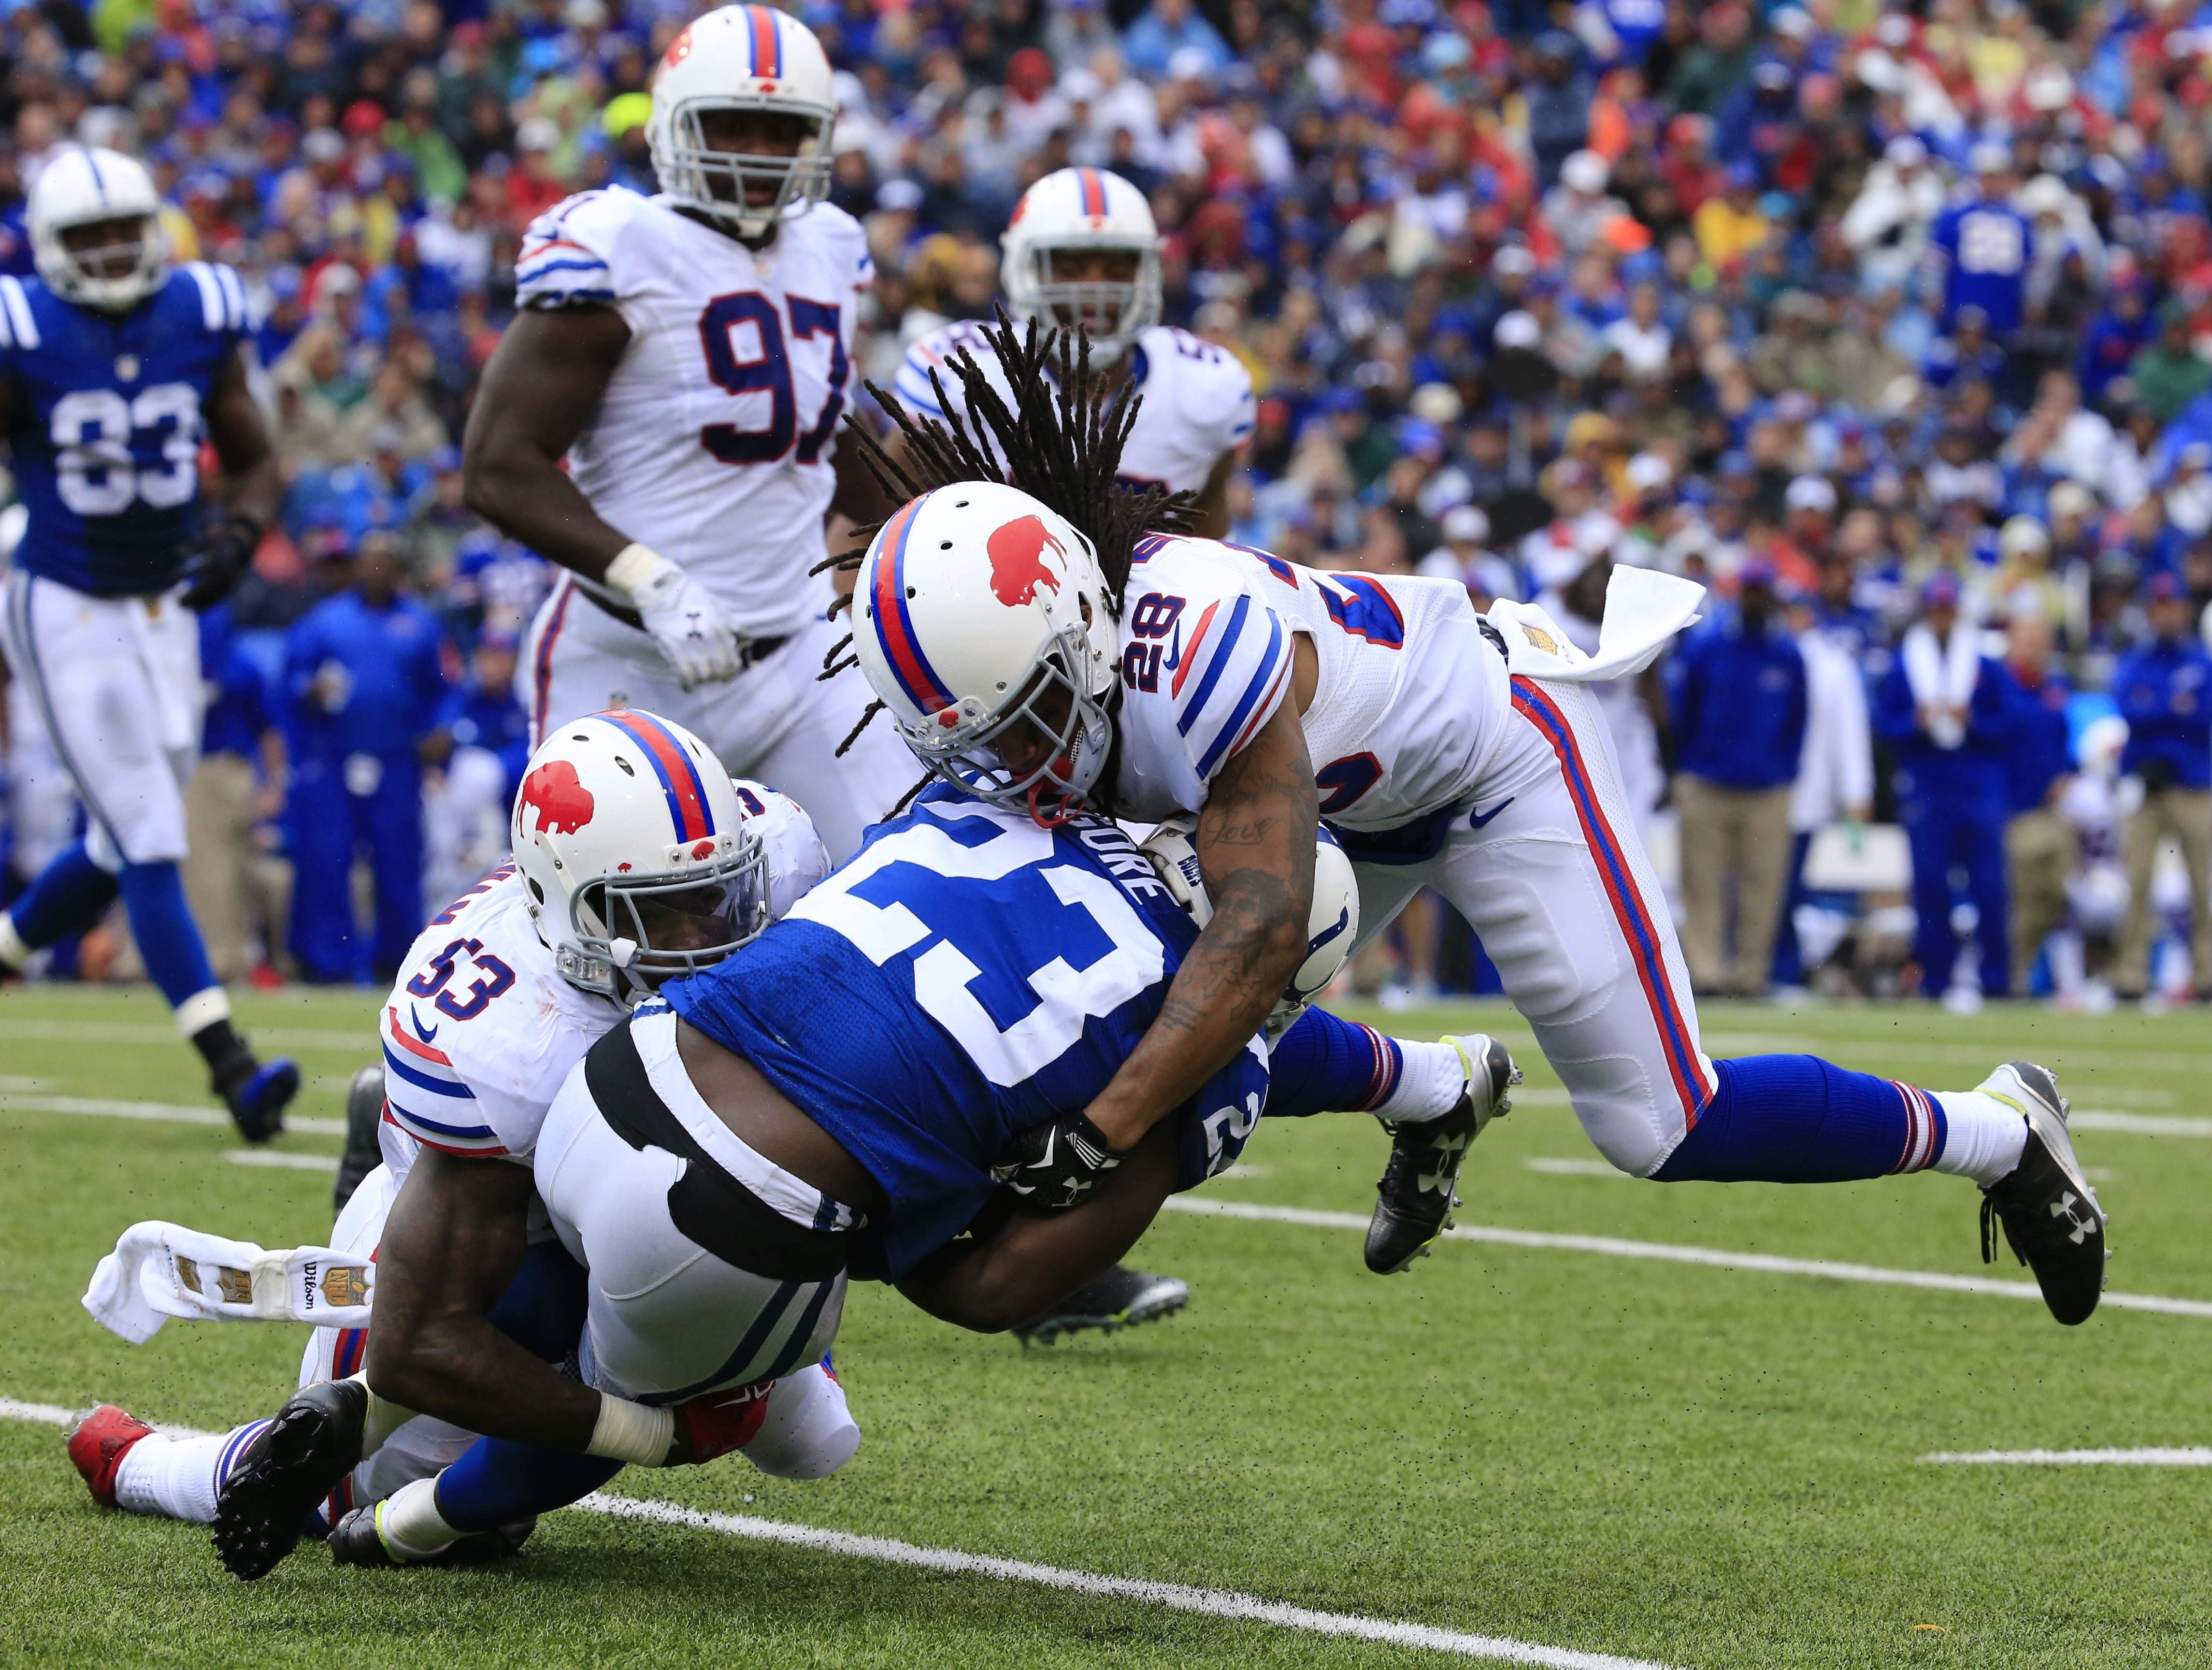 Bills defenders Nigel Bradham (53) and Ronald Darby (28) wrap up Colts running back Frank Gore (23) during the fourth quarter of Buffalo's win at home.